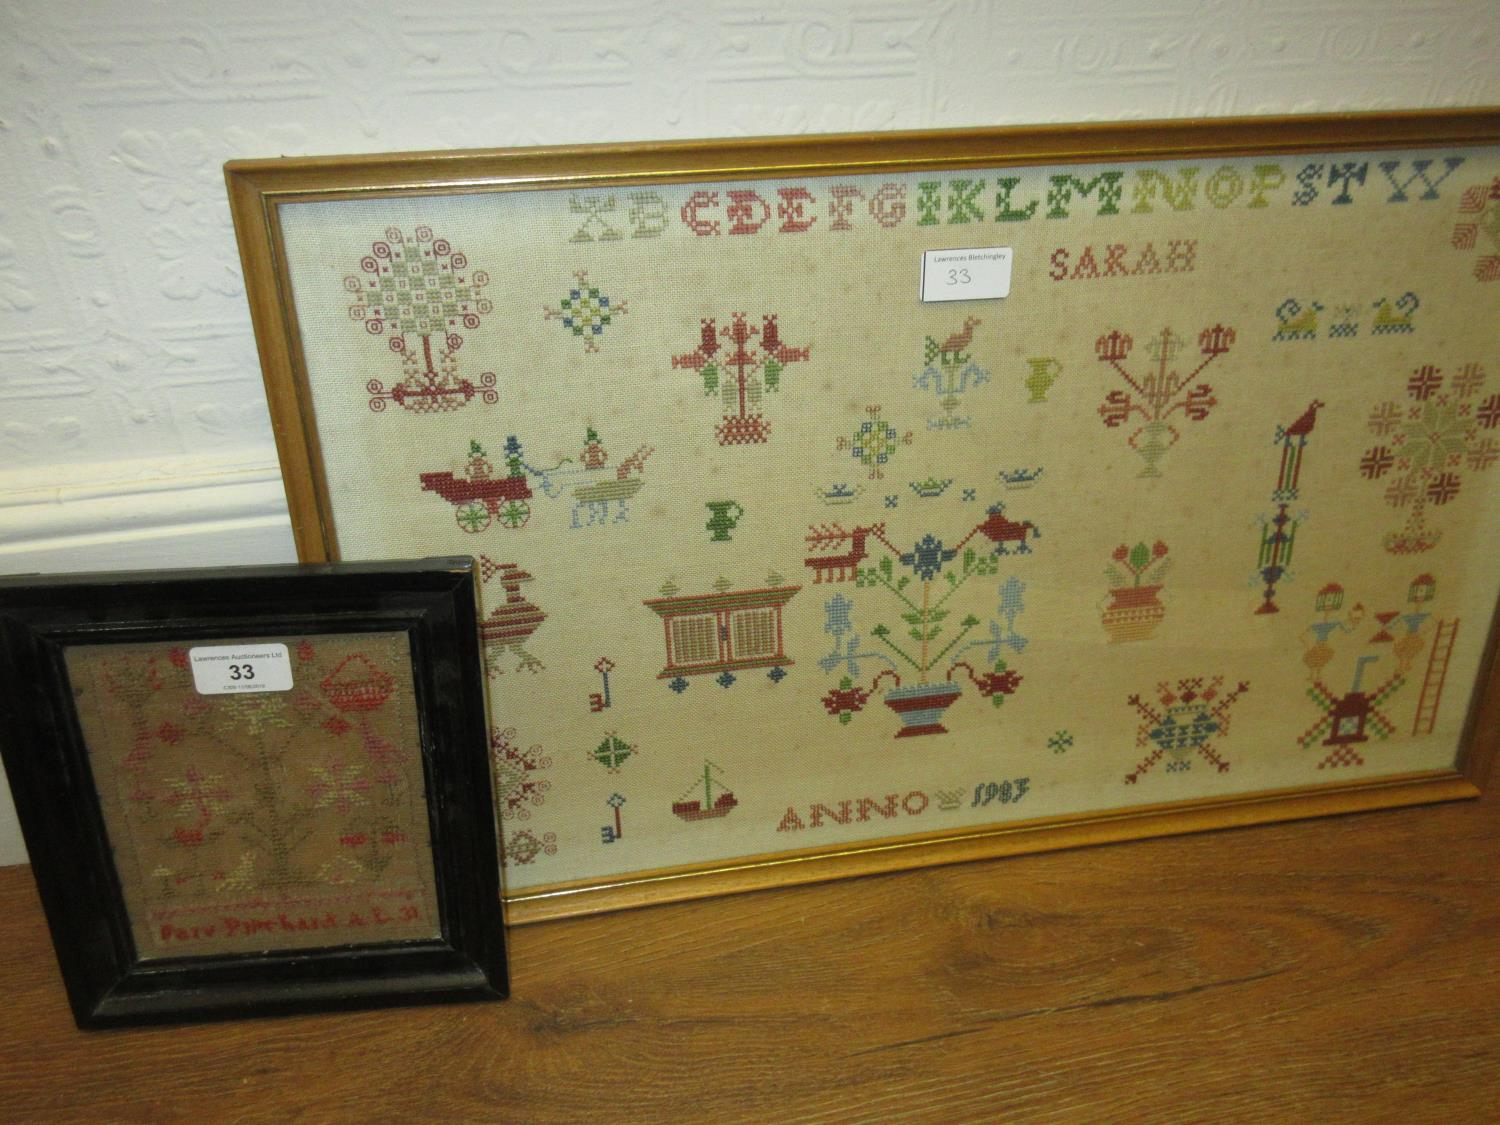 Lot 33 - Small 19th Century needlework sampler in an ebonised frame, 6ins x 5ins and a larger framed